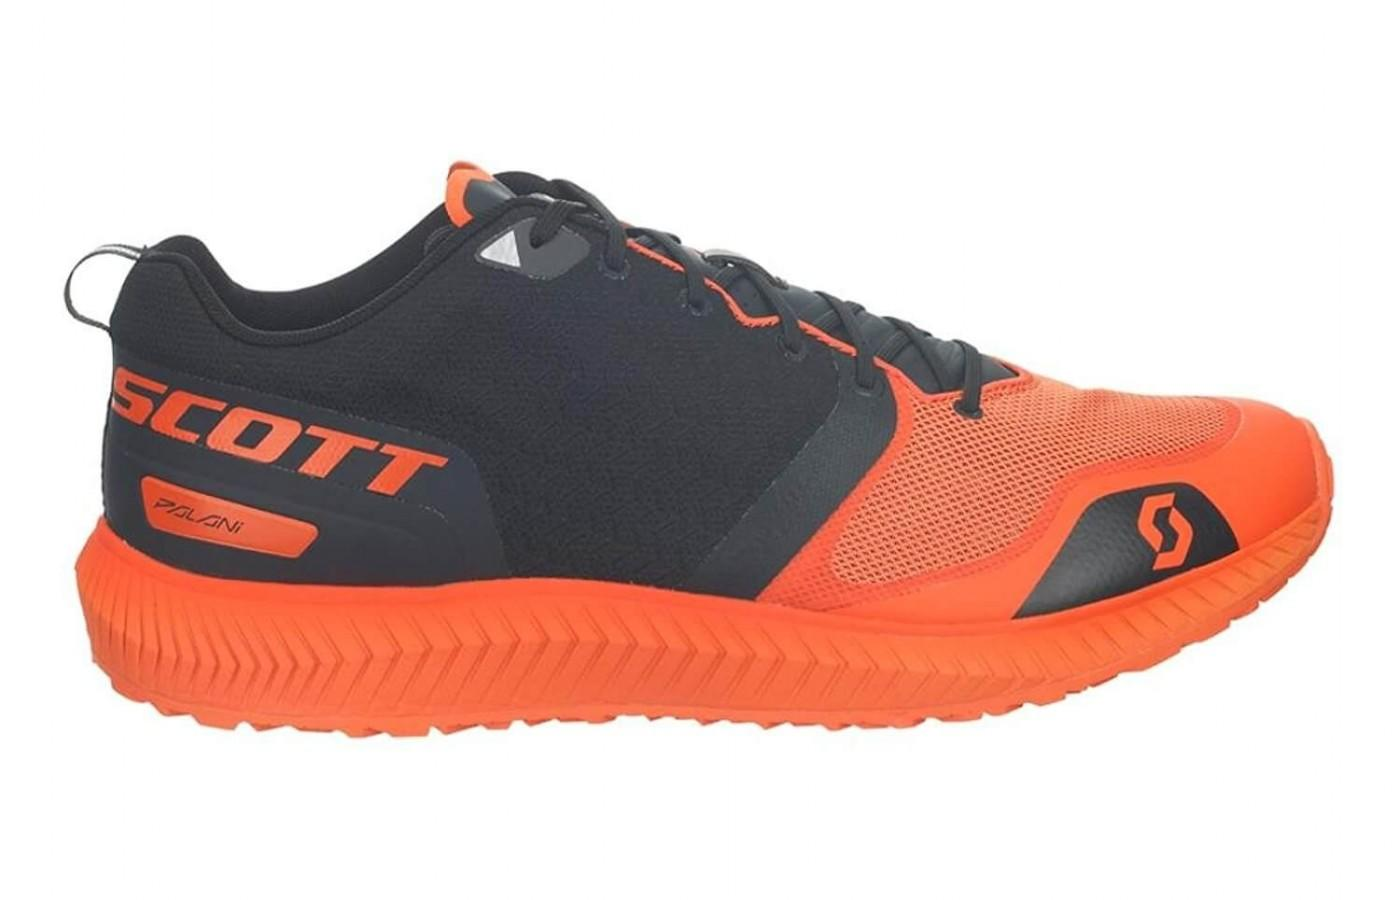 The Scott Palani Trainer has an eye-popping color scheme.